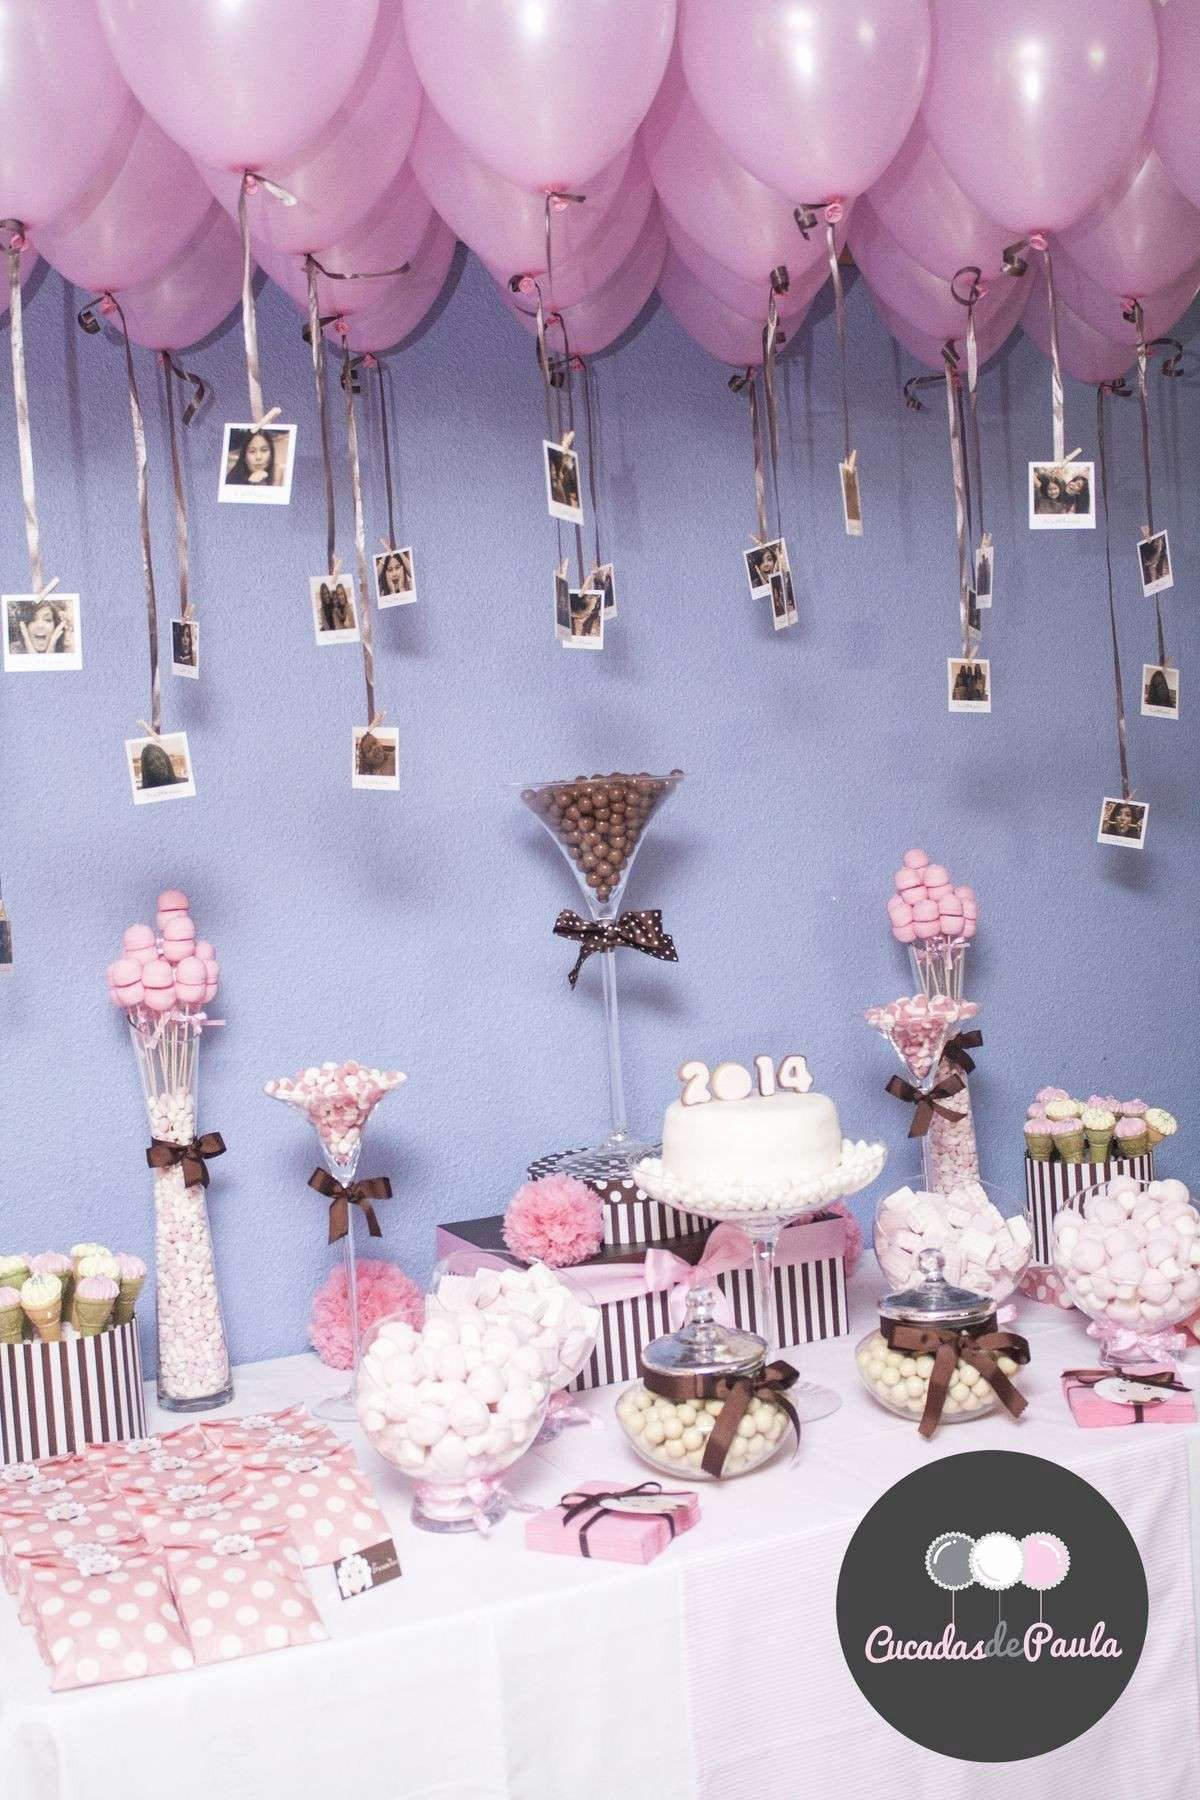 First Birthday Decoration Ideas for Baby Girl Awesome Awesome First Birthday Decoration Ideas at Home for Girl